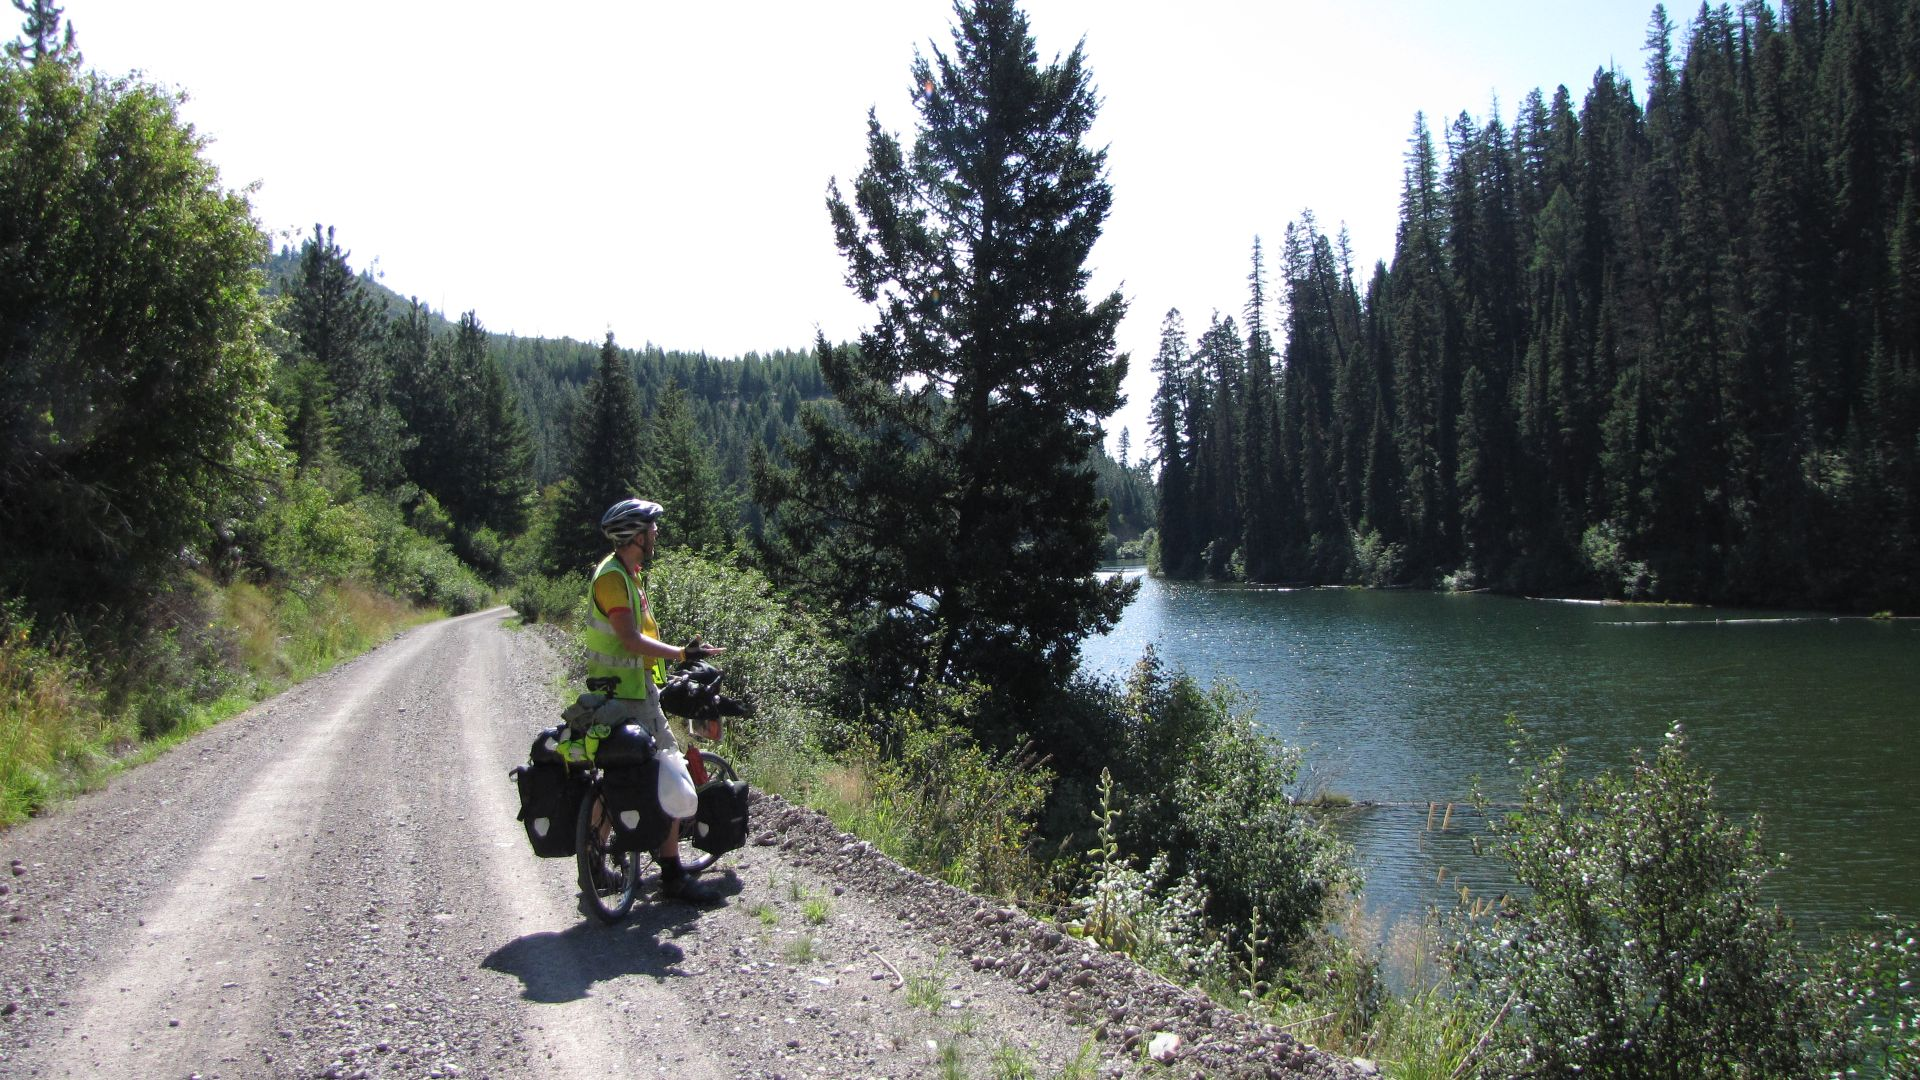 Nr Seely Lake, Montana, USA - a lovely day riding off-road (dirt tracks) along Continental Divide Trail with Nancy & Matthew - thanks guys, see you soon hopefully :)